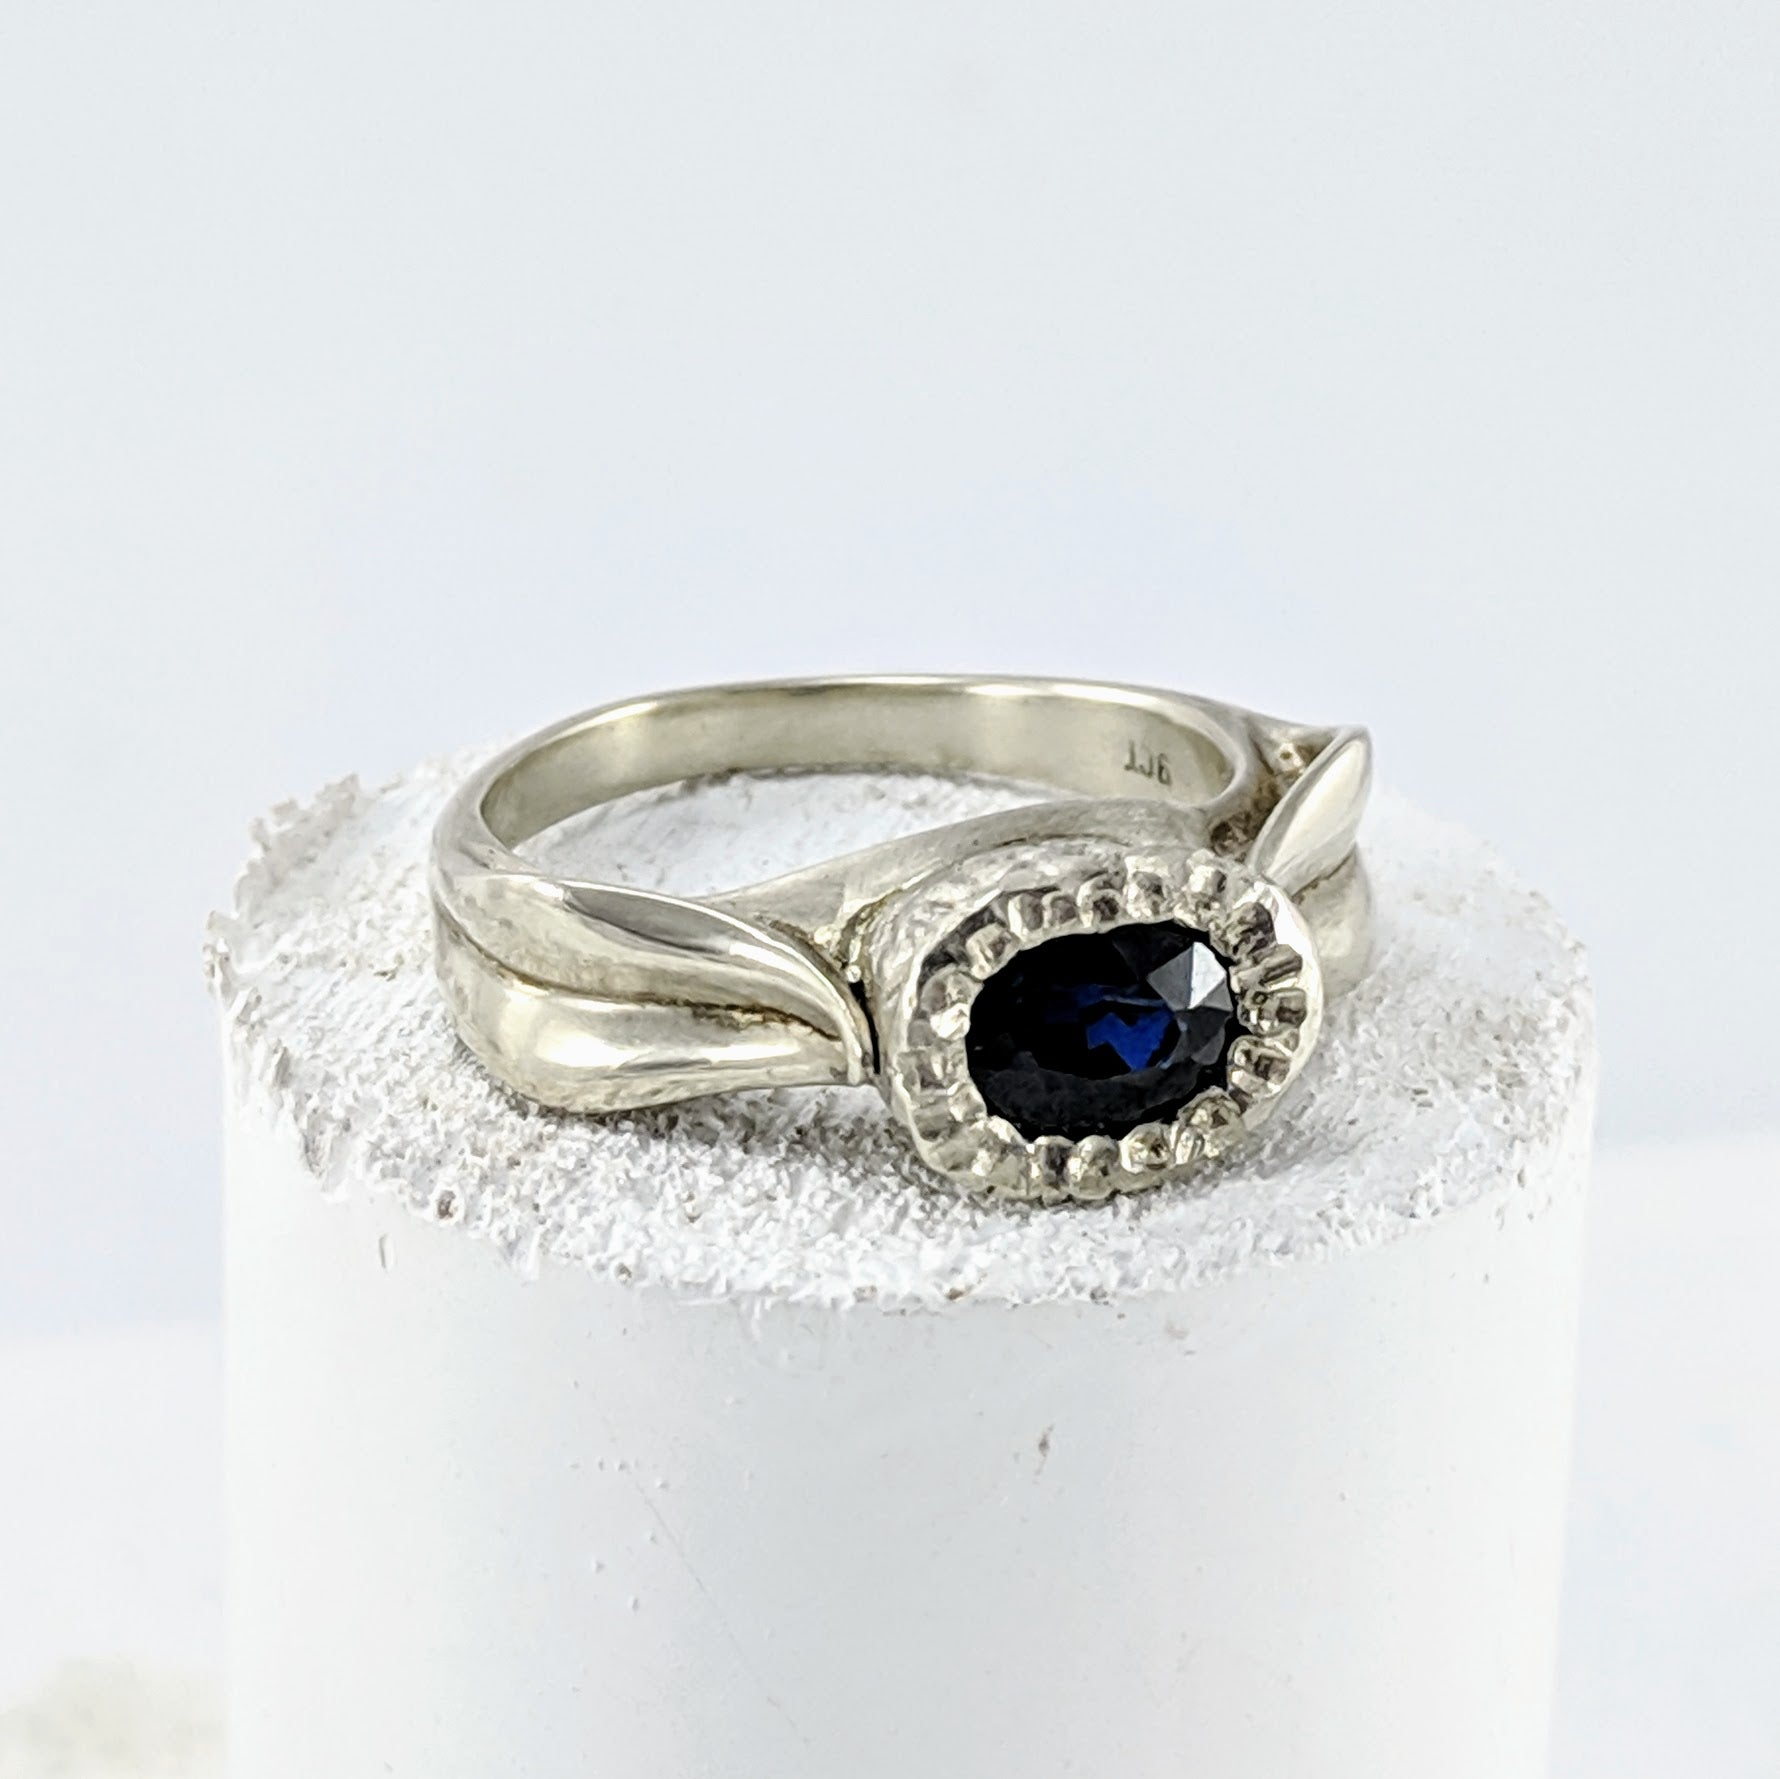 White gold leaf ring set with blue sapphire. Handmade in New Zealand by Vaune Mason.